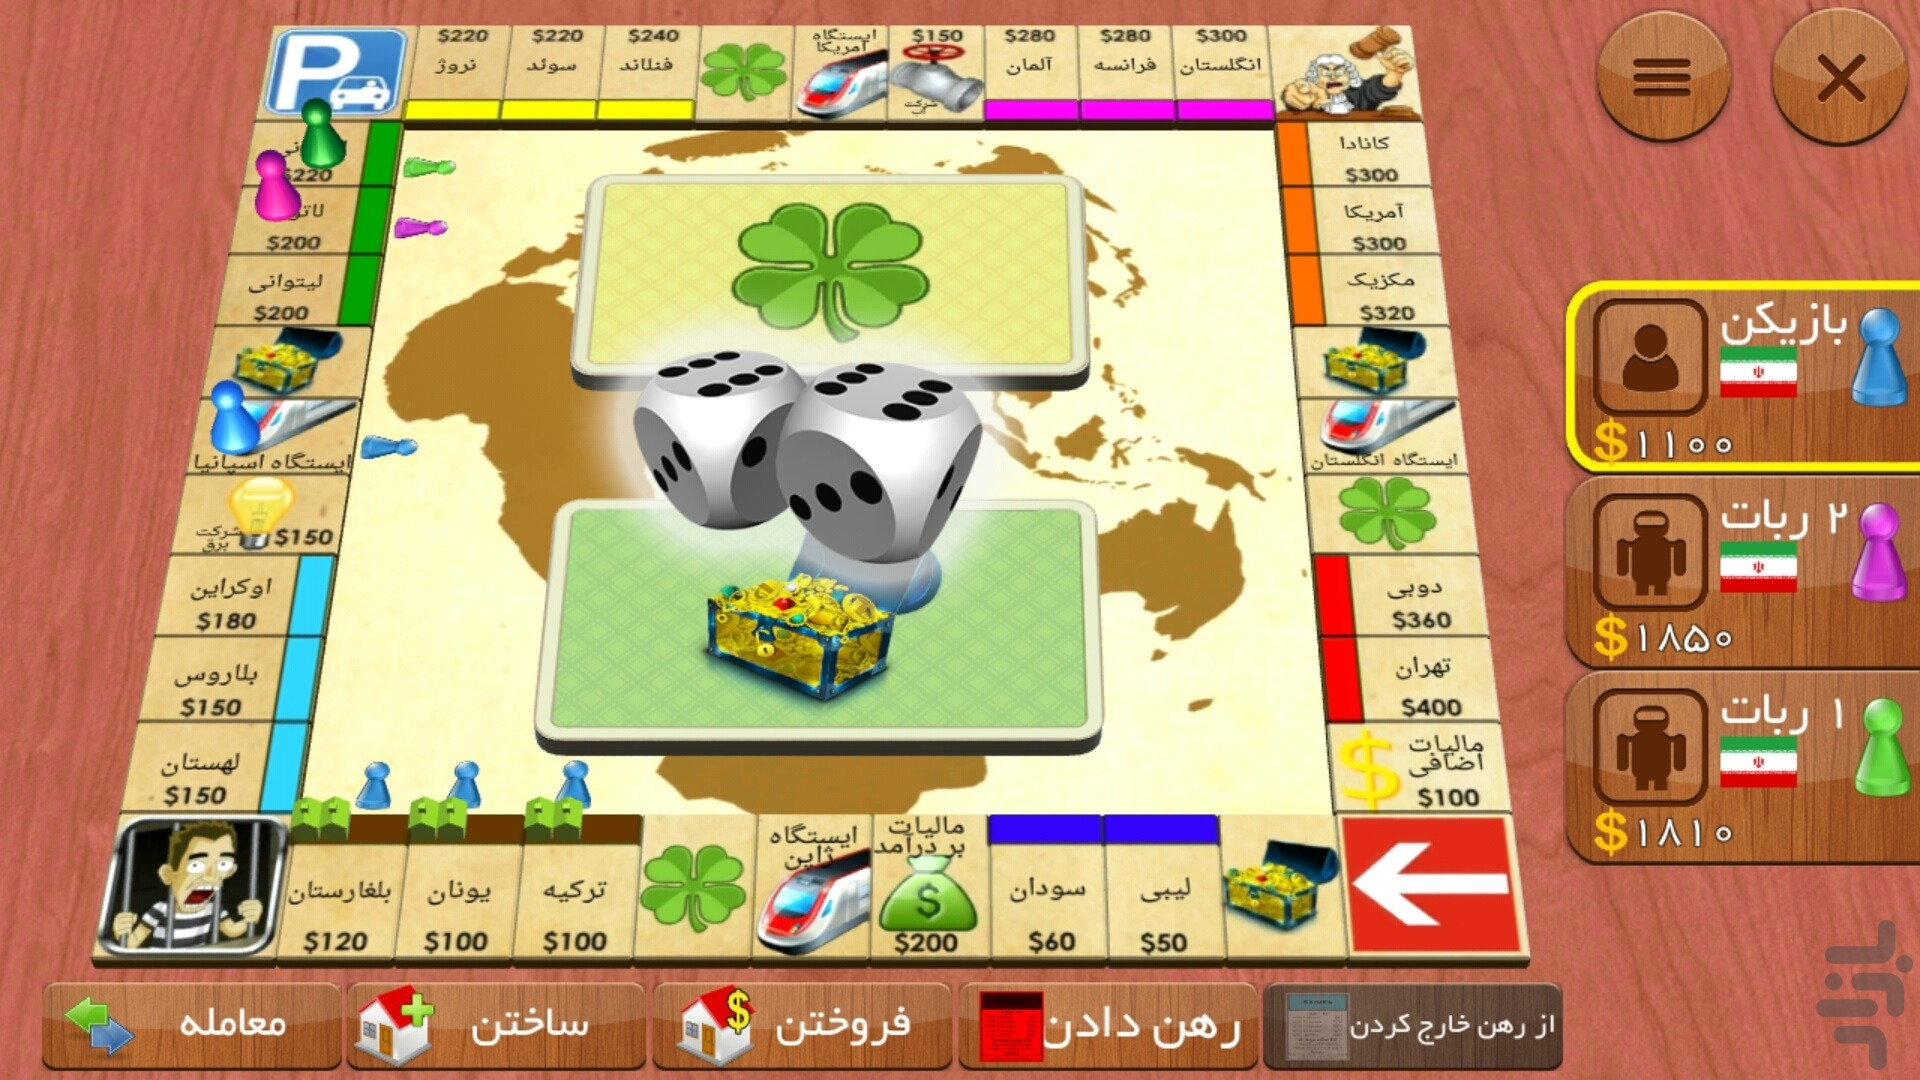 Rento Monopoly screenshot